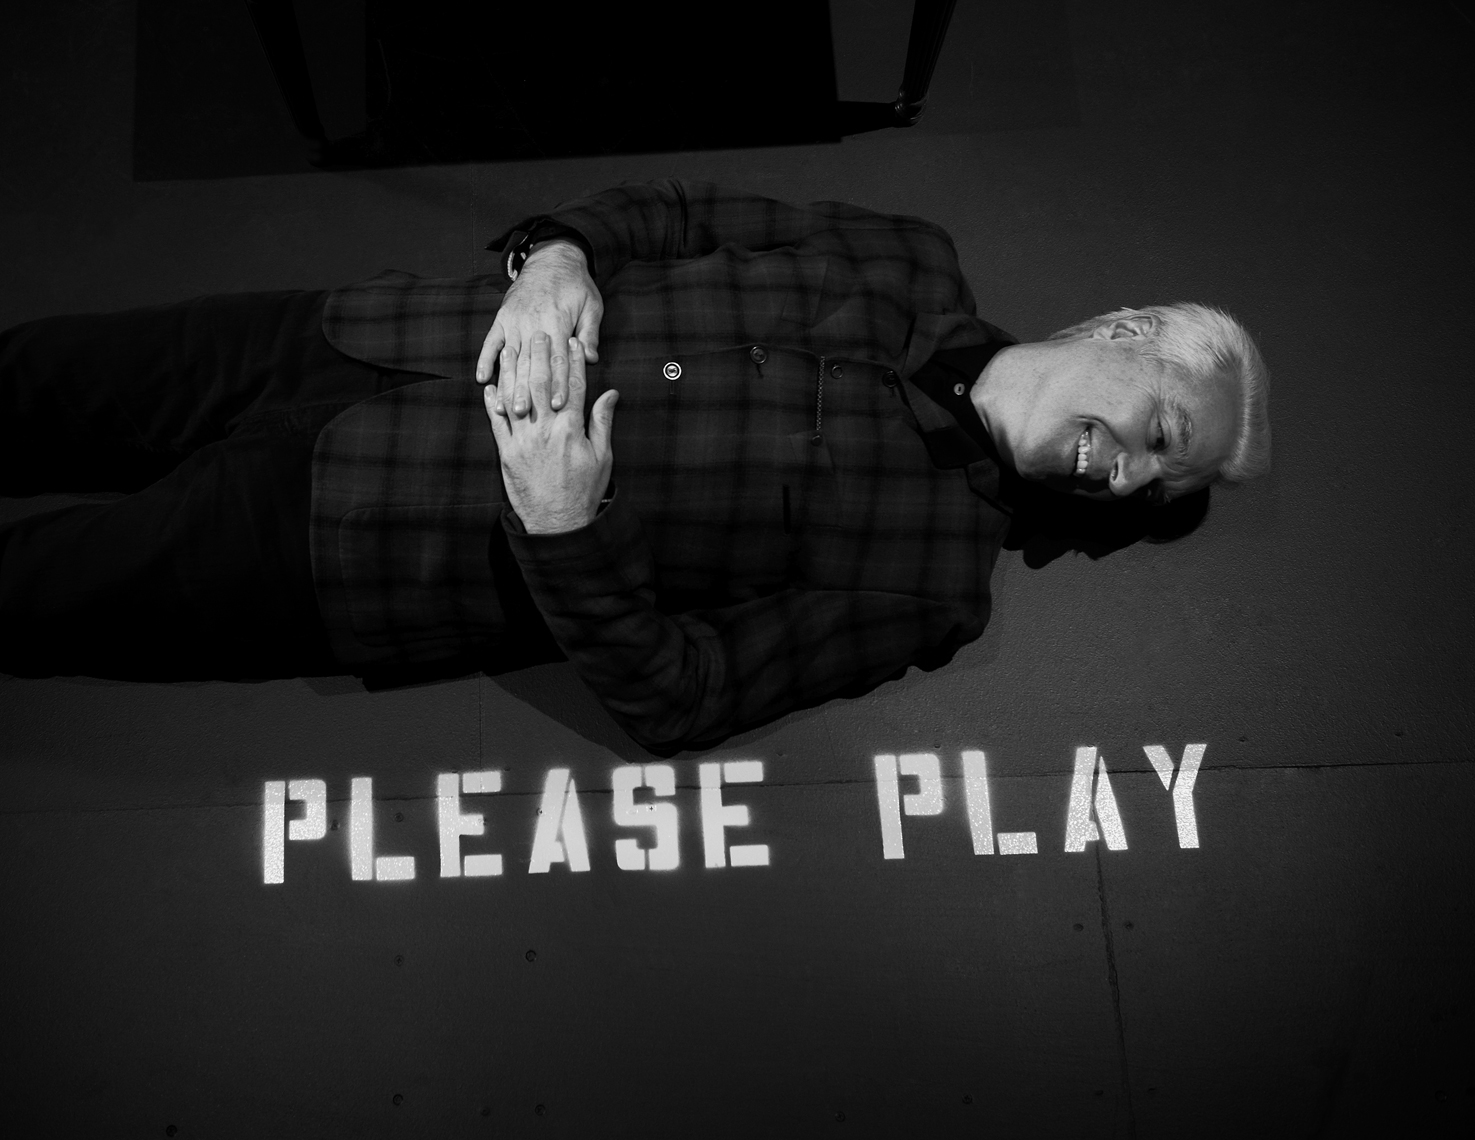 David Byrne laying on the floor with the words Please Play